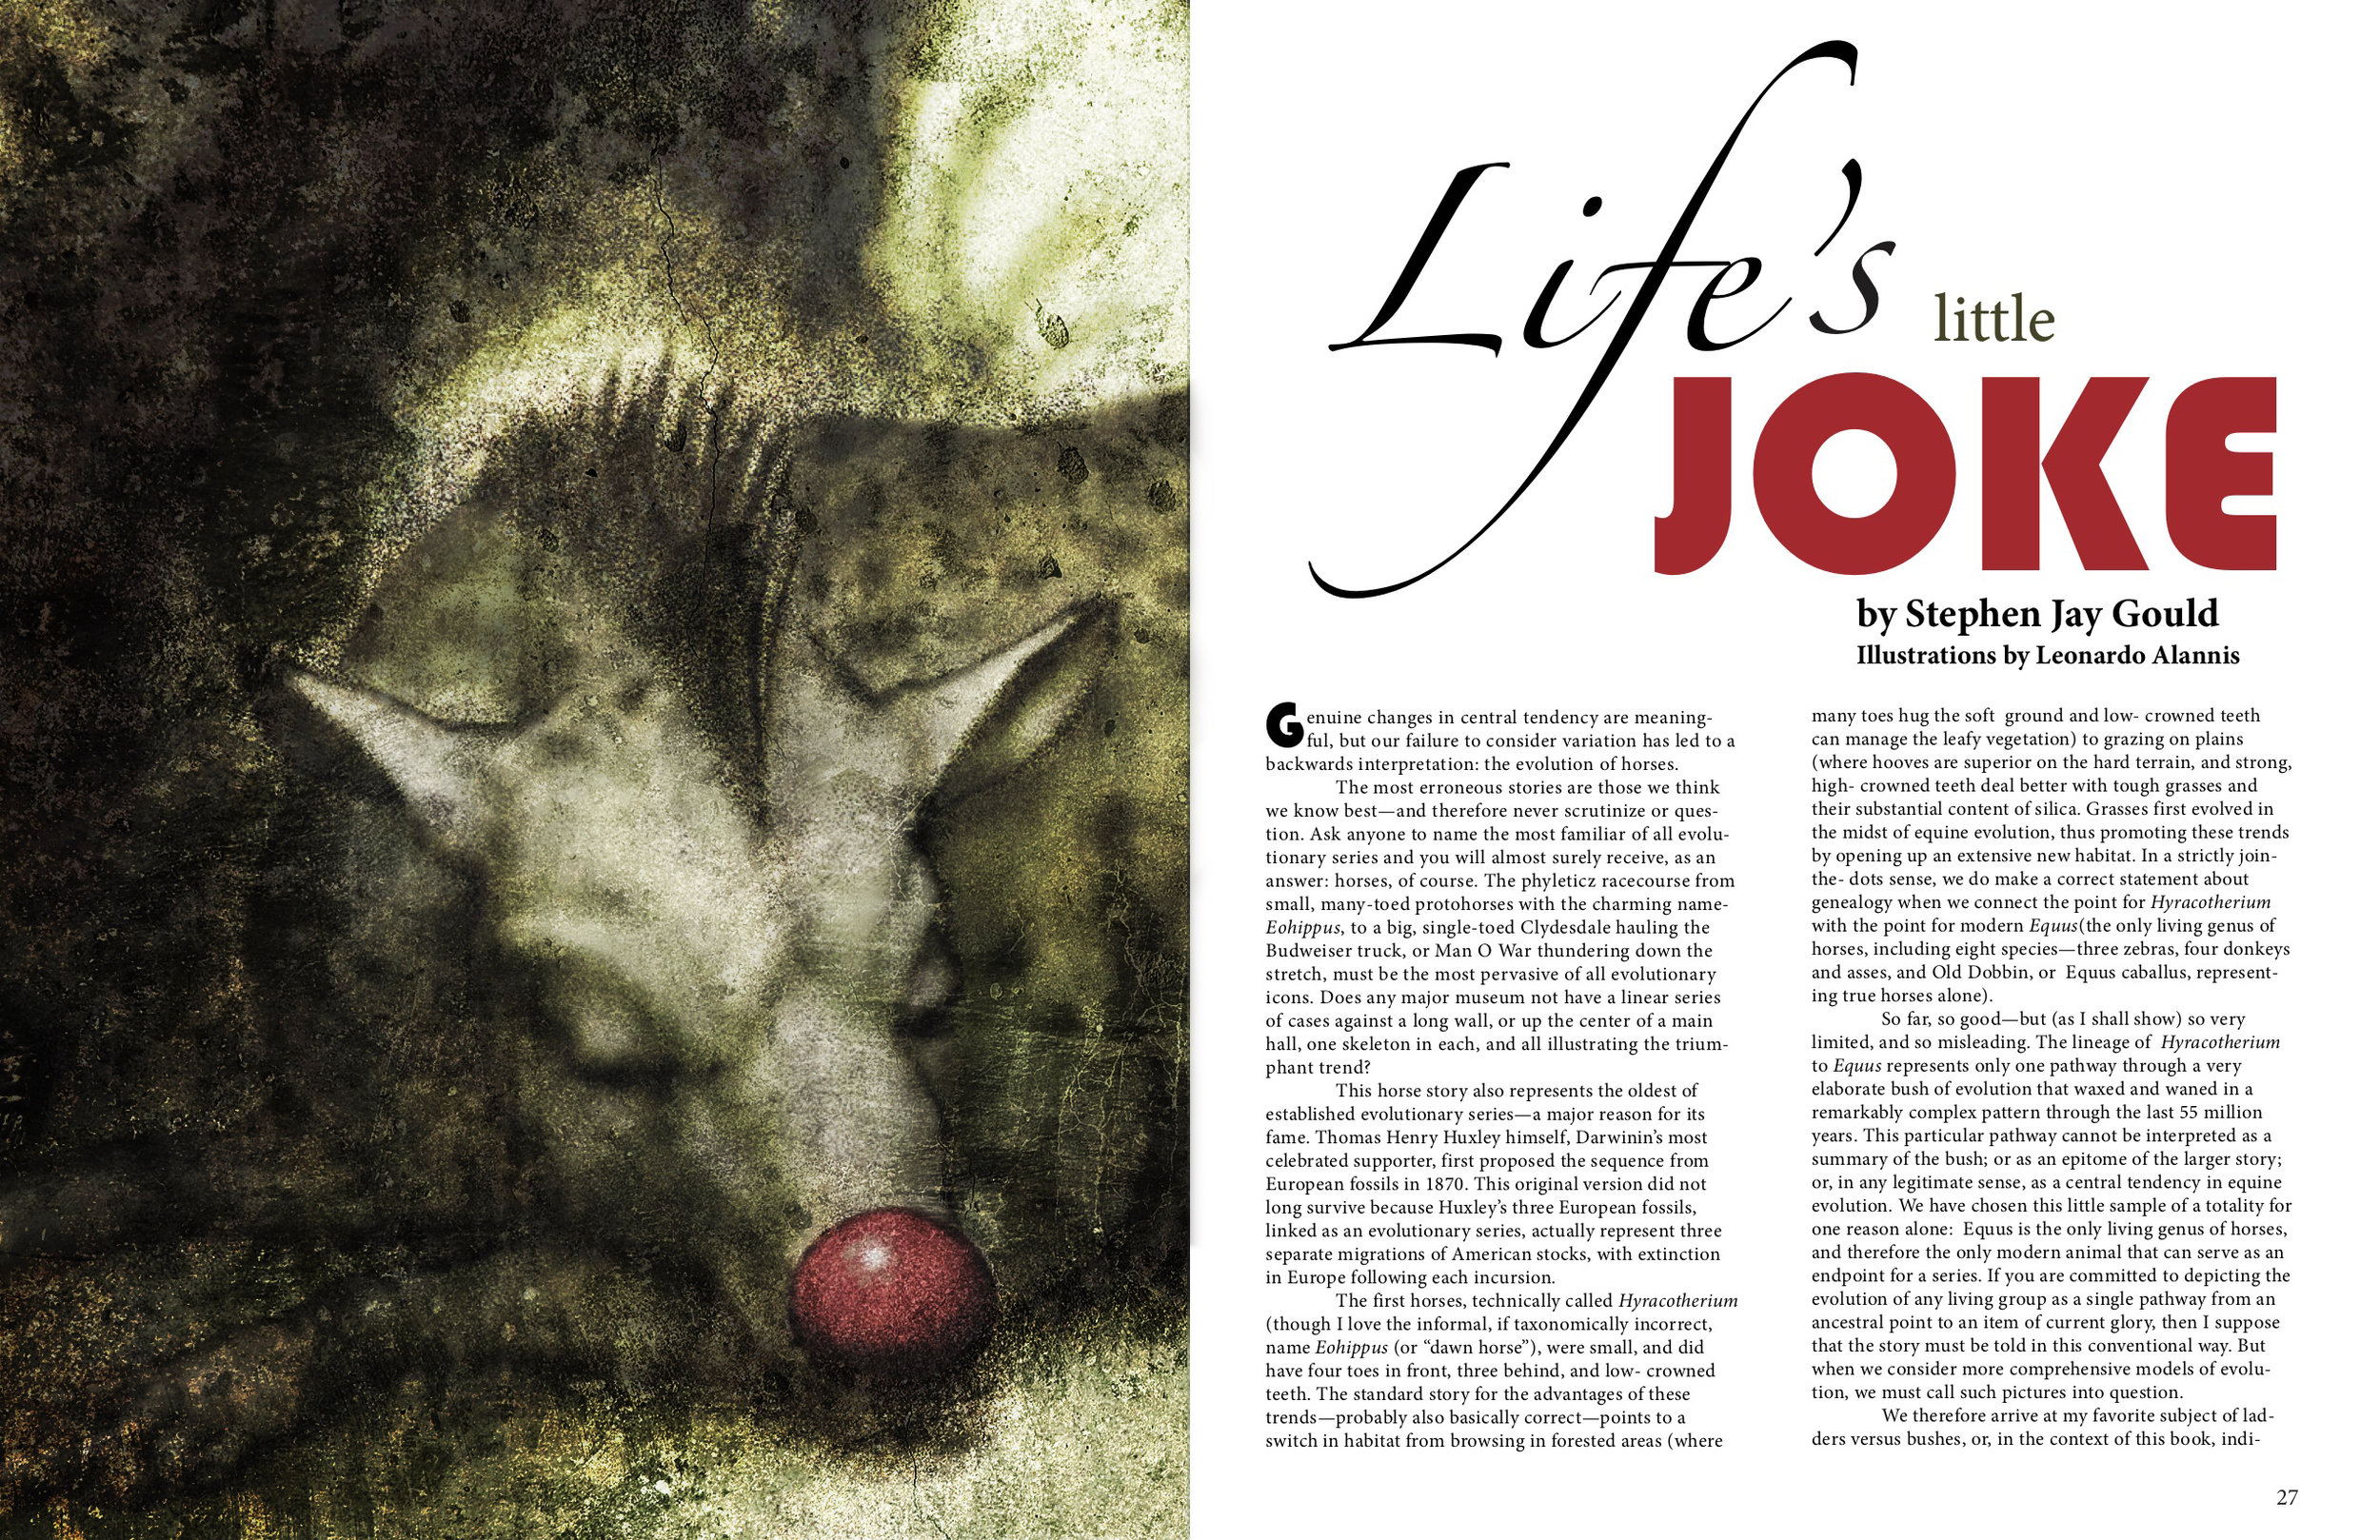 LIFE'S LITTLE JOKE–Digital graphite. Conceptual illustration on horse evolution.